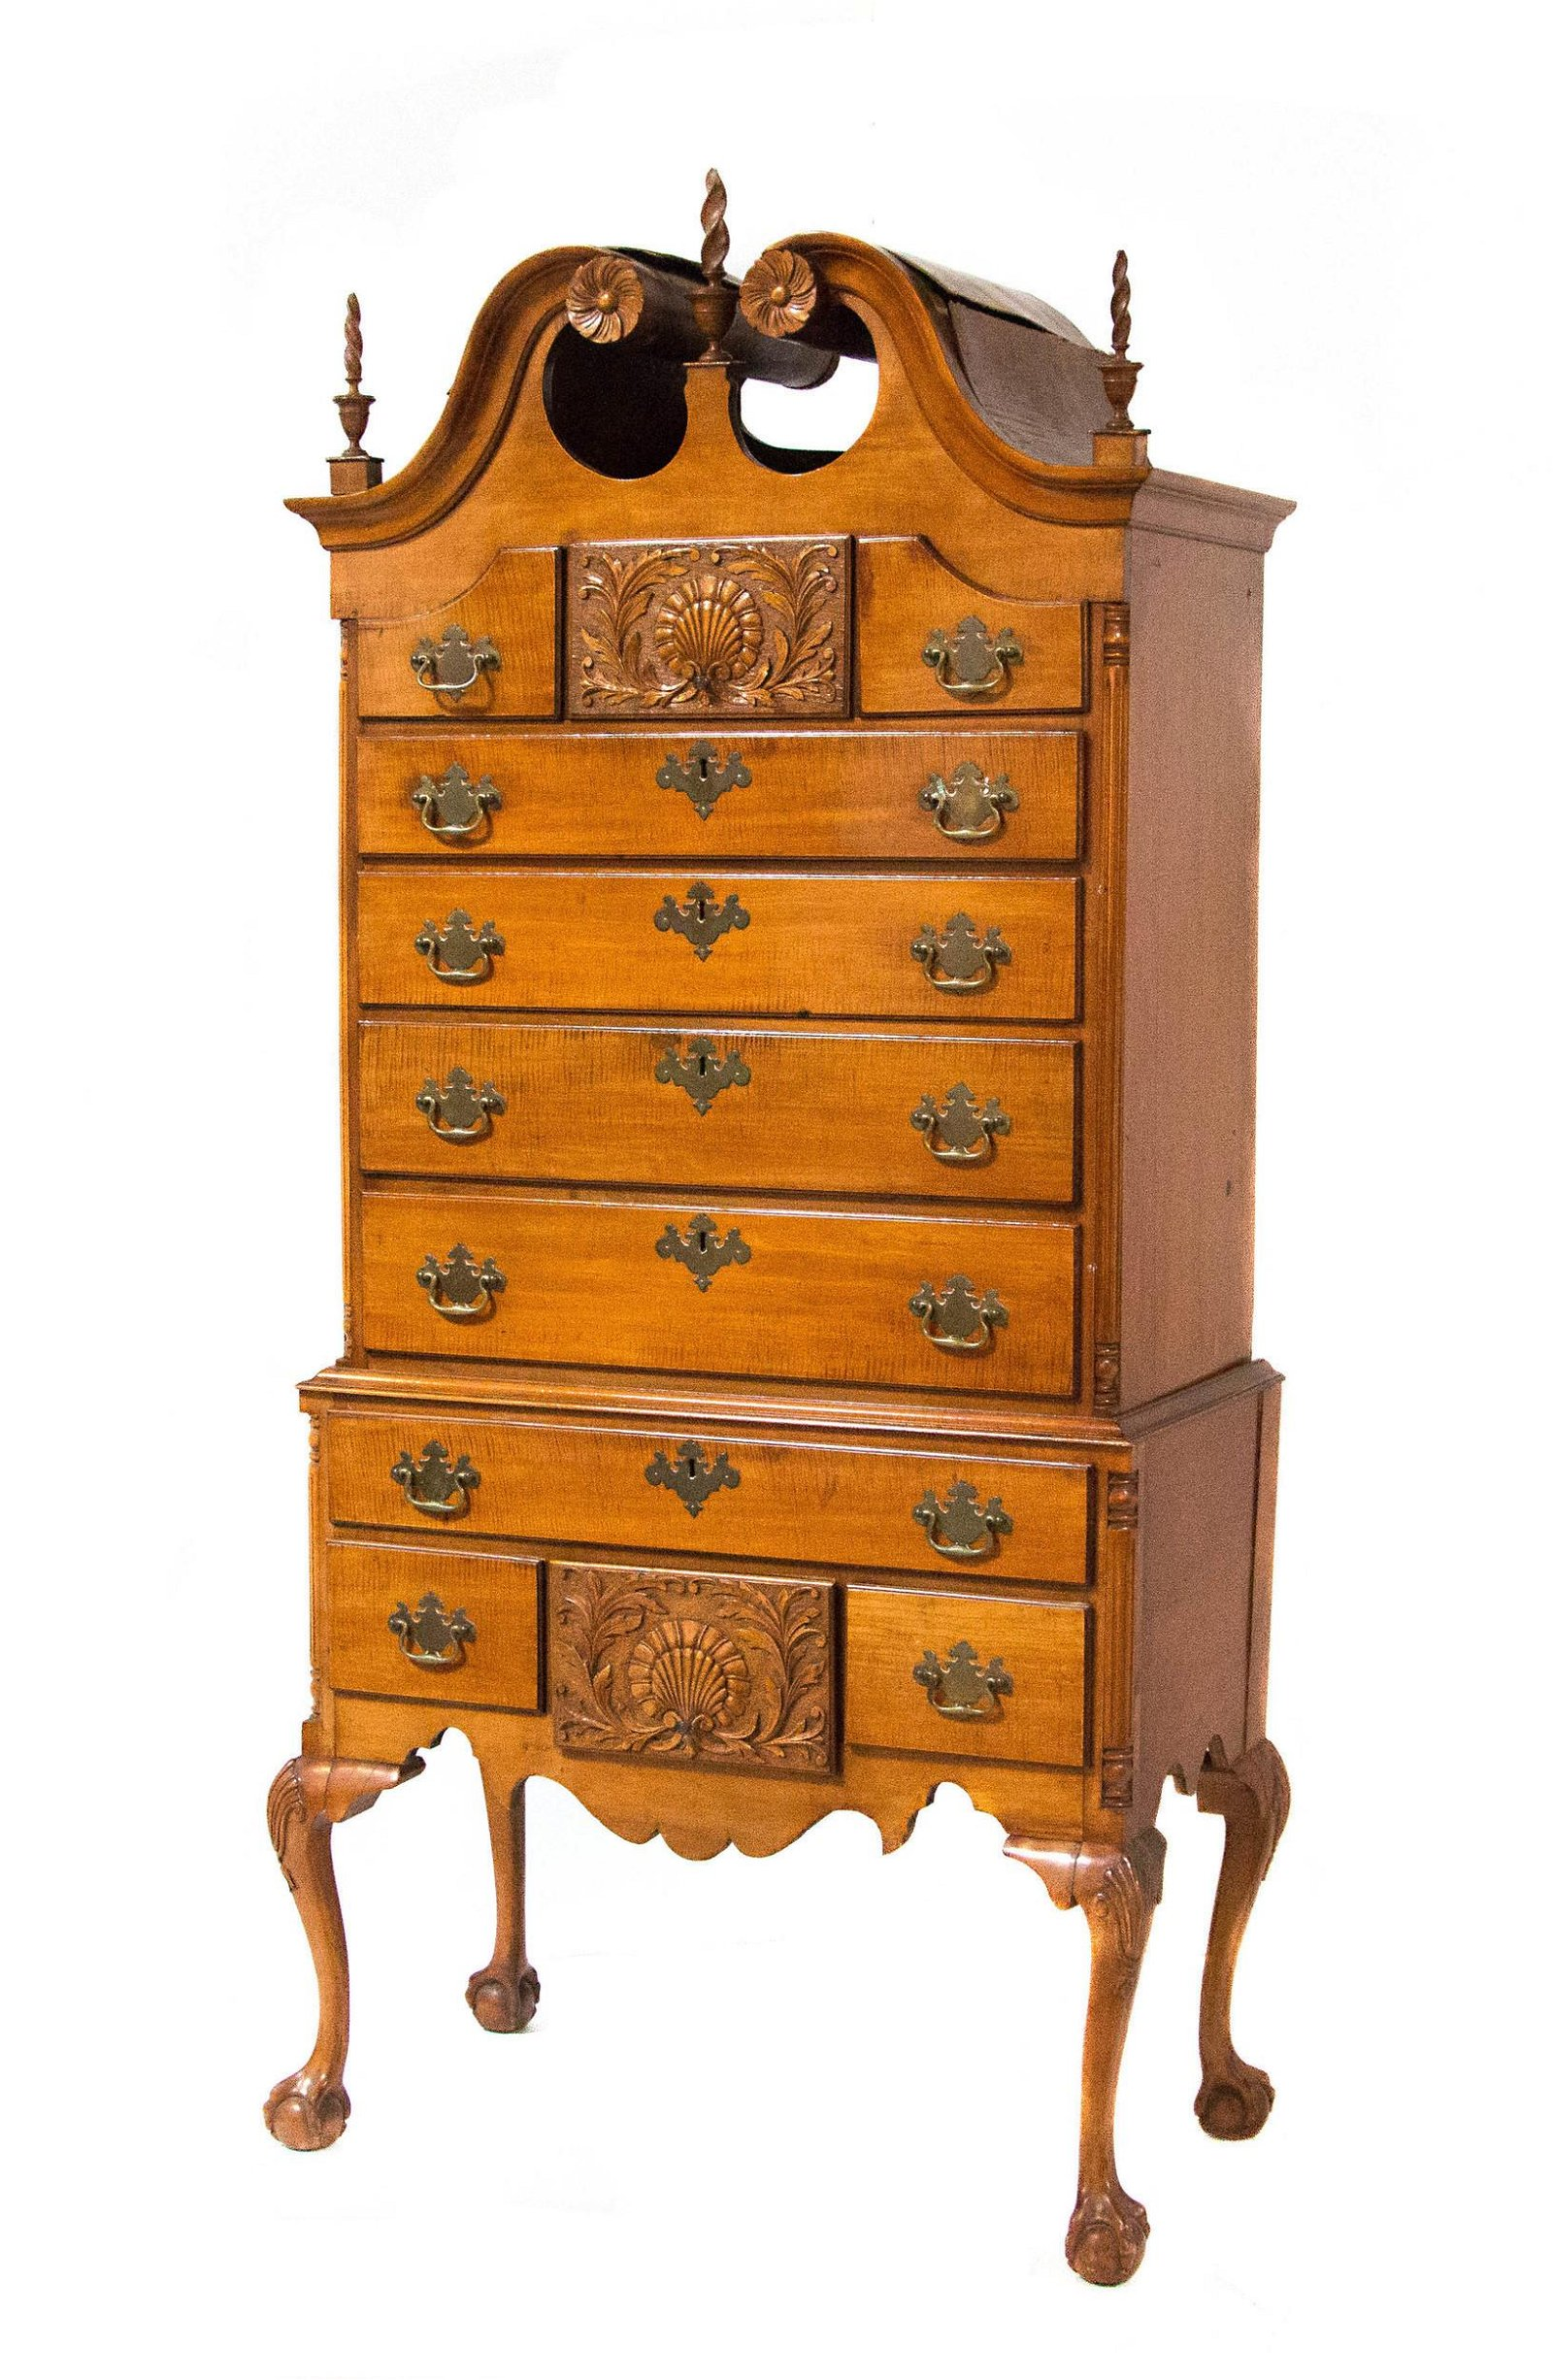 Queen Anne Maple High Chest of drawers